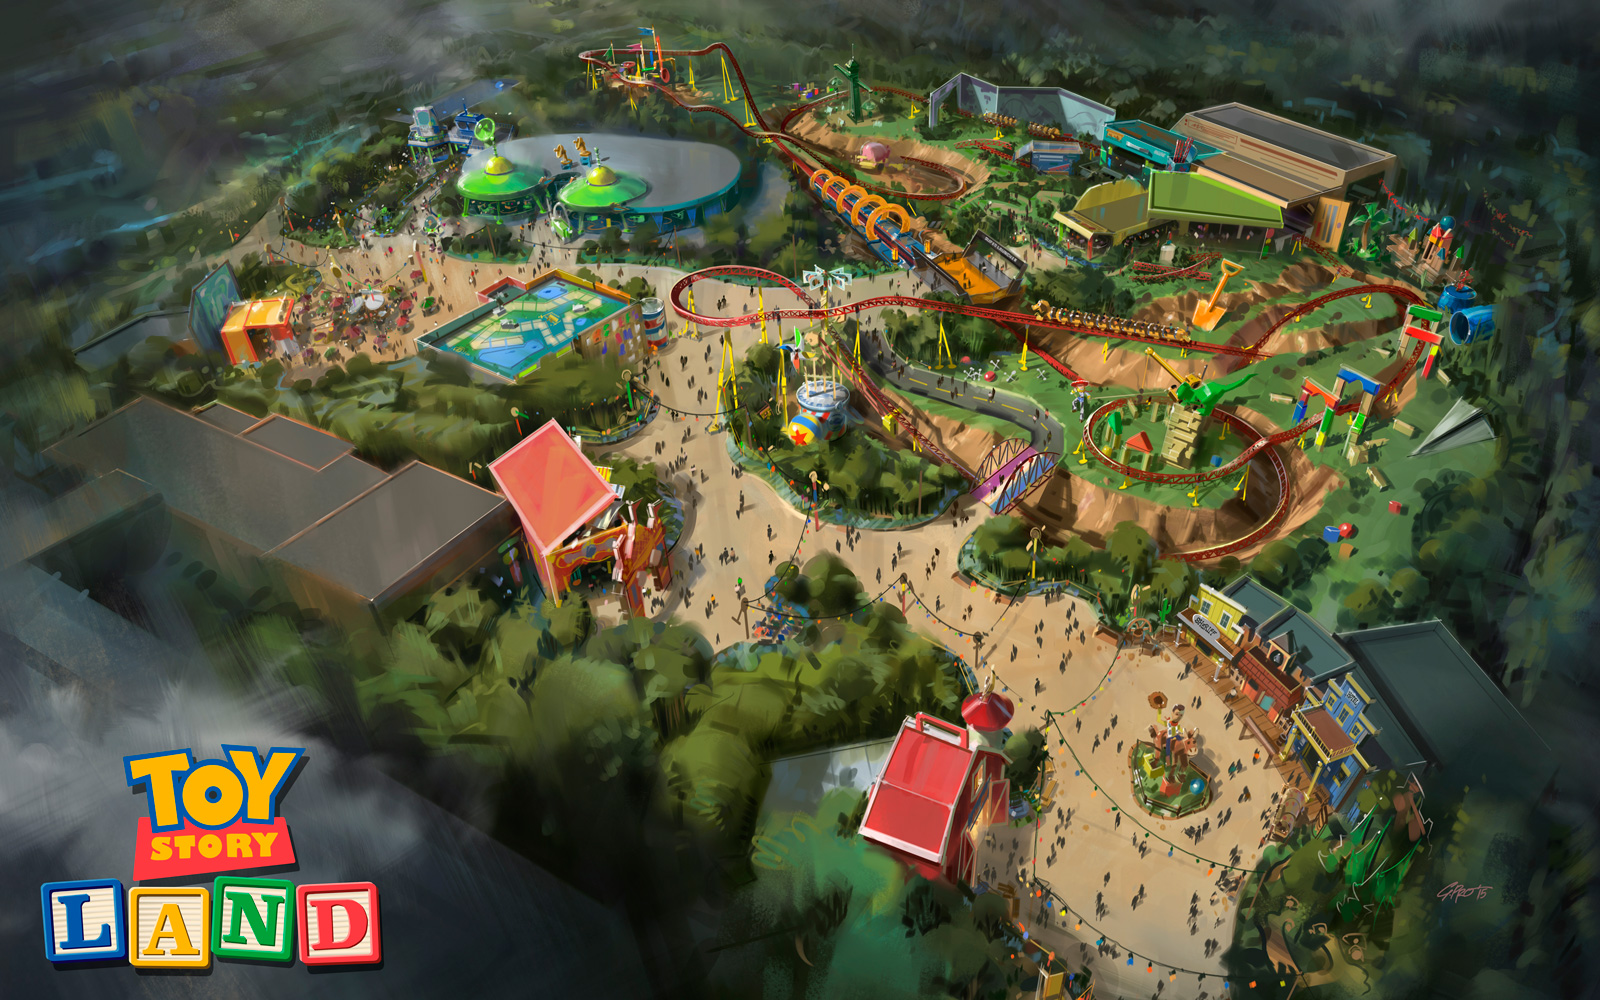 Disney Just Announced Toy Story Land's Opening Date